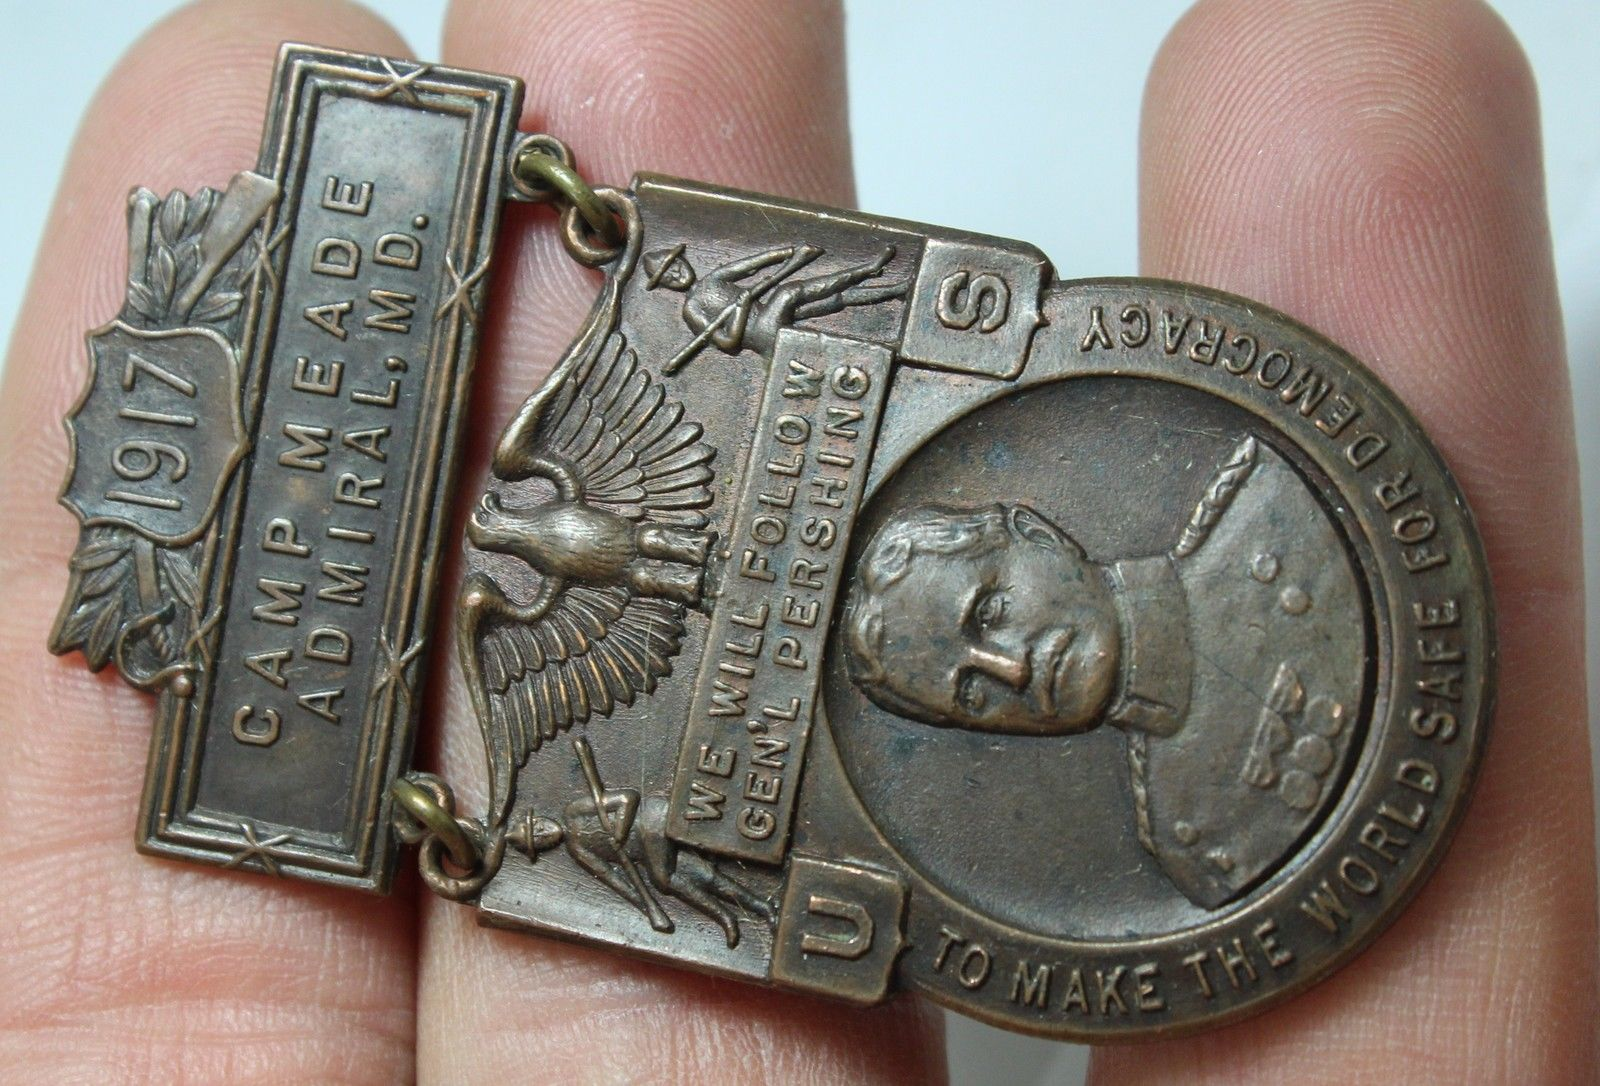 General Pershing Camp Meade 1917 medal - 2